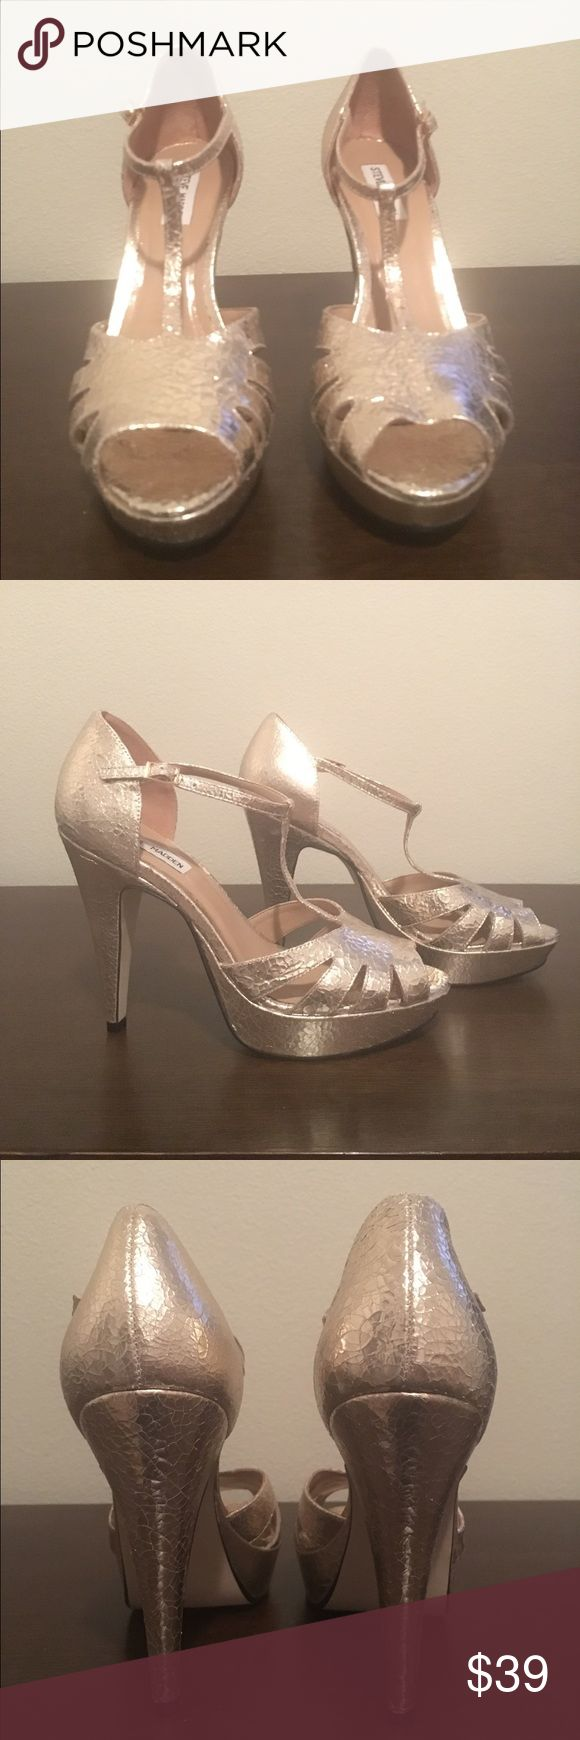 Platform open toe heels Steve Madden metallic gold open toe pumps. Never worn but the heels do have slight scratches. Not very noticeable refer to pictures. Heel height 4.75 inches with 1 inch platform  No box Steve Madden Shoes Heels